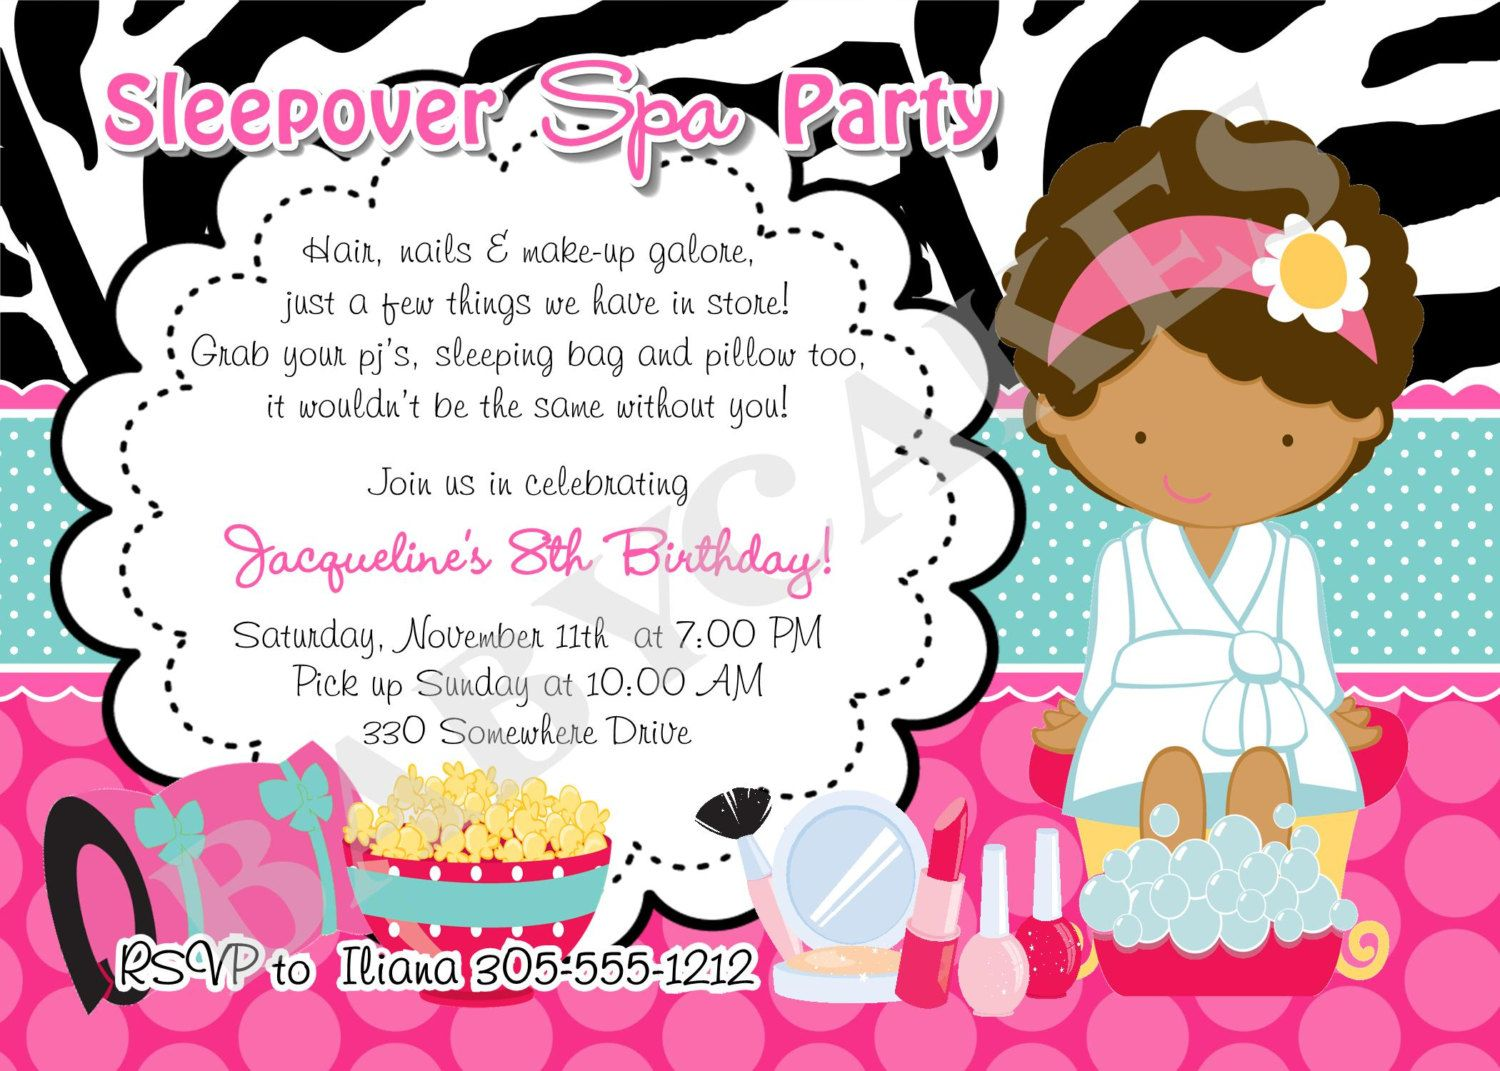 Spa Slumber Party Invitations Free Printable | Birthday party ideas ...